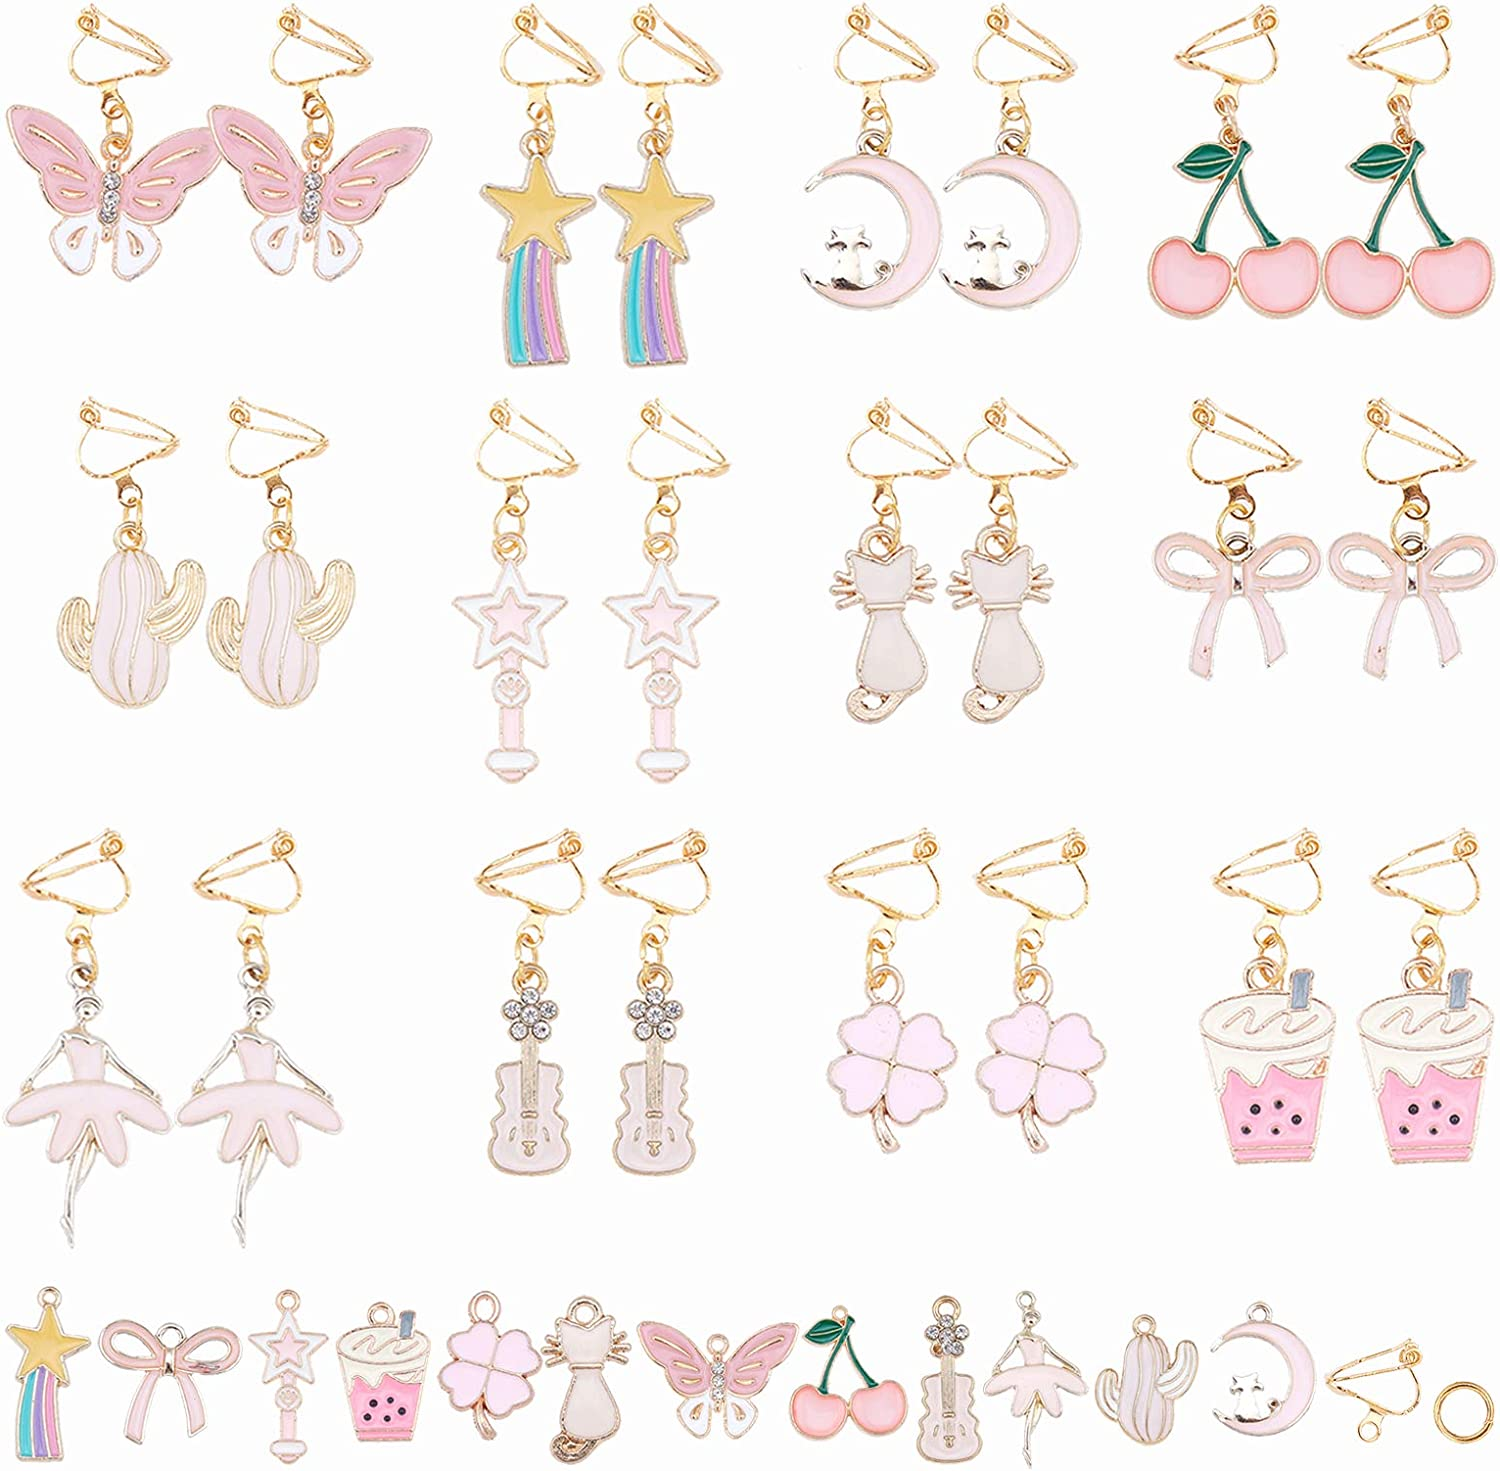 At the price of surprise SUNNYCLUE 1 Box DIY 12 Pairs Clip Now free shipping On C Pink Earrings Themed Cute